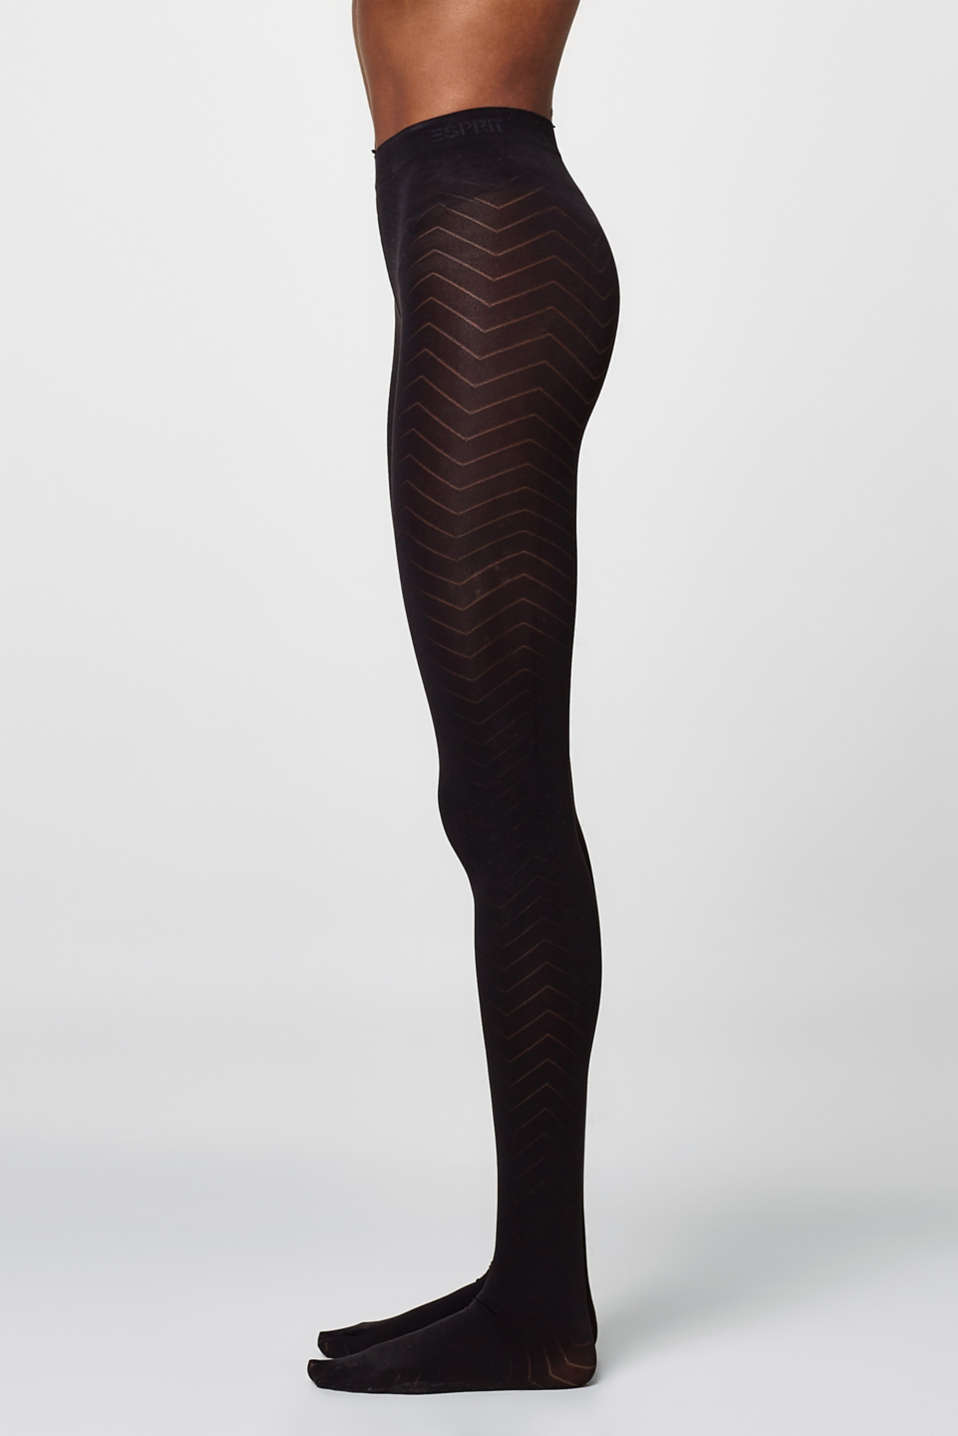 Opaque, finely textured tights